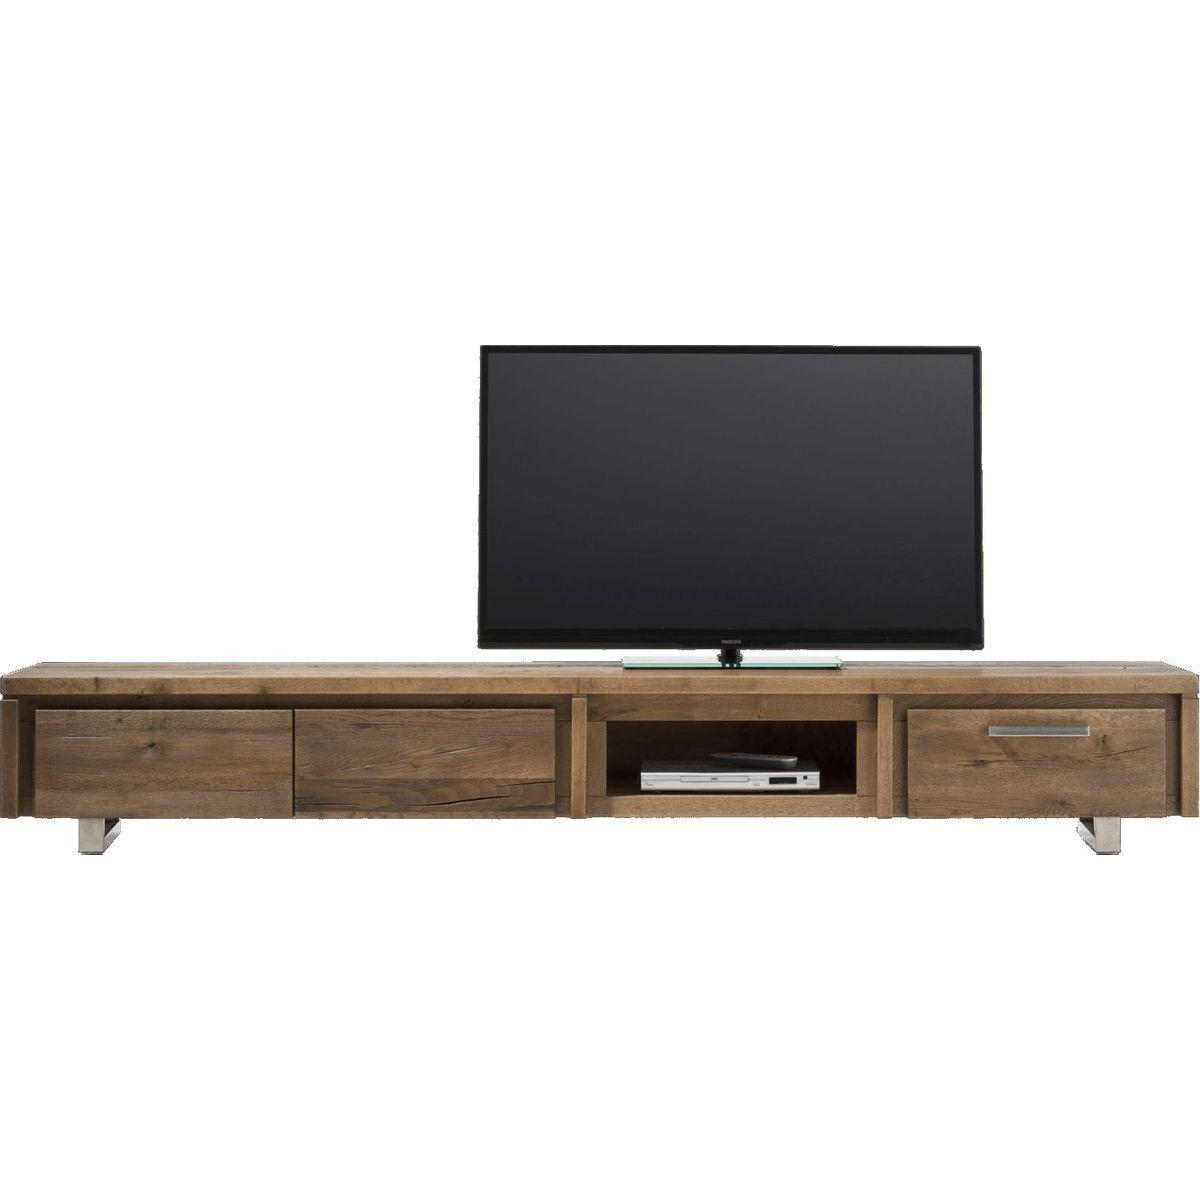 MORE by H&H Meuble TV 240cm